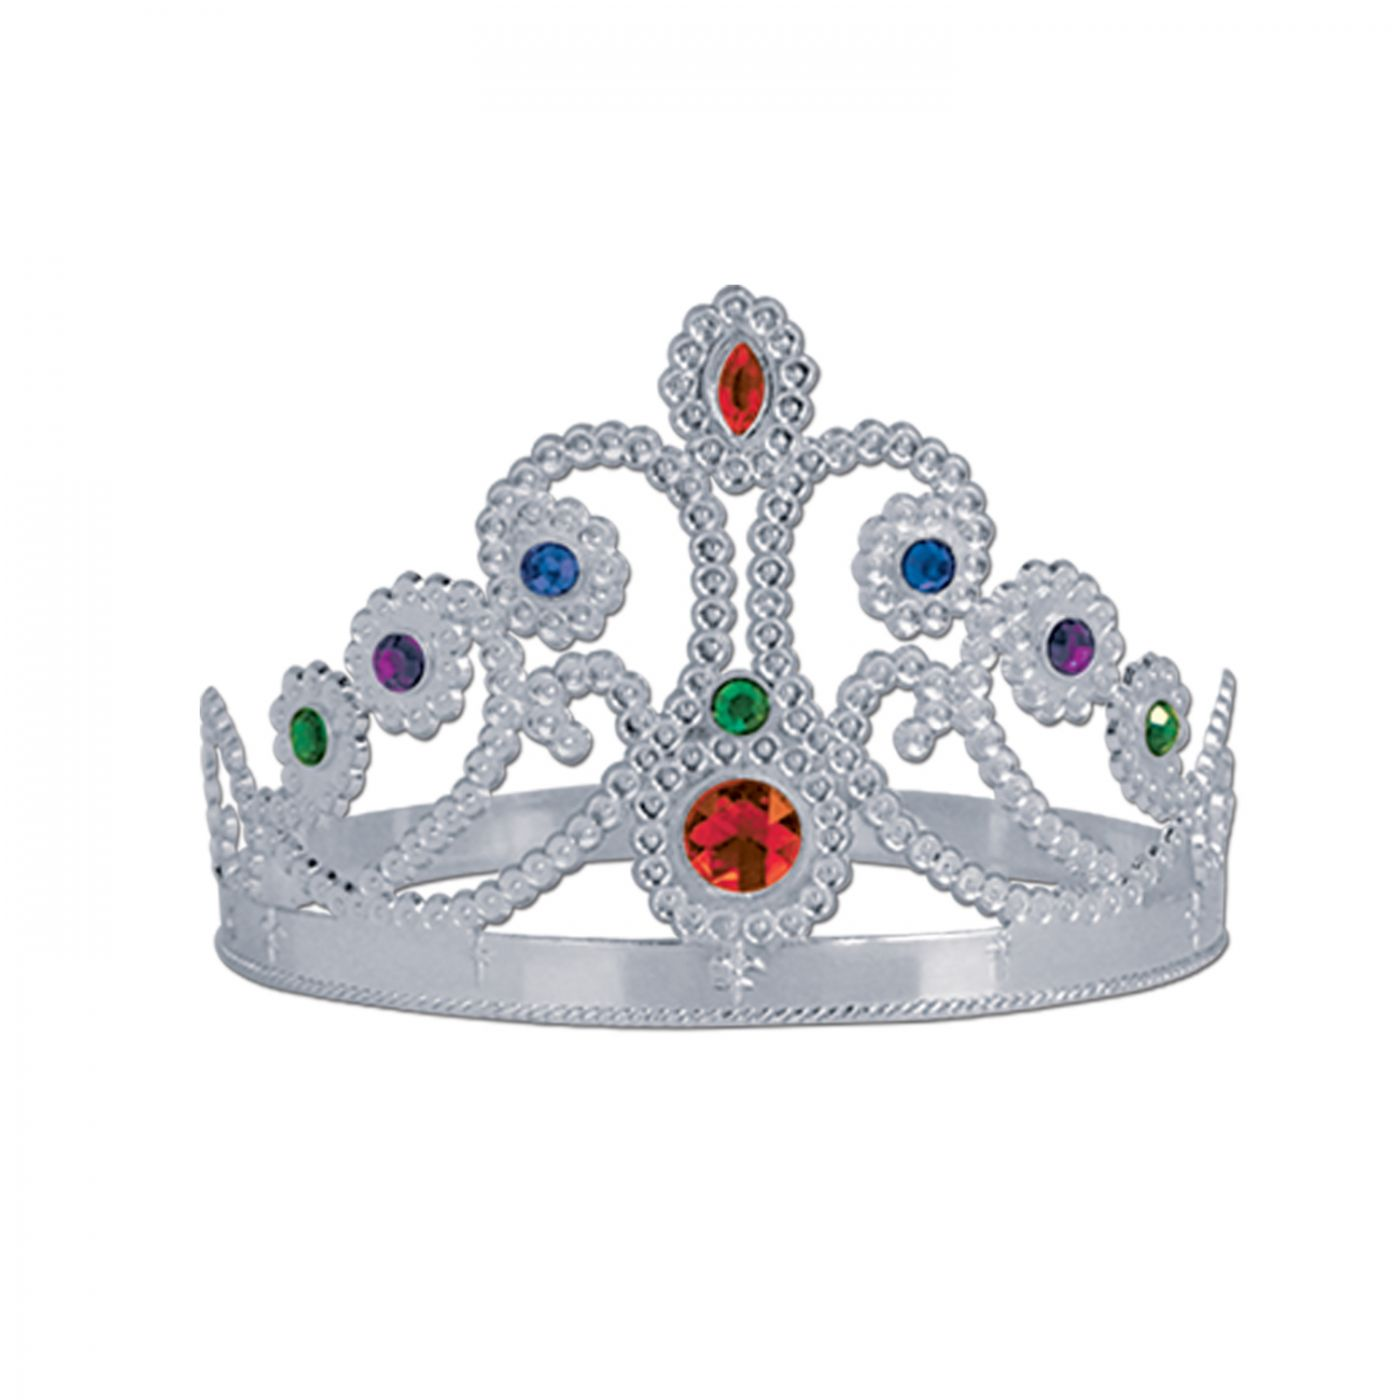 Plastic Jeweled Queen's Tiara image